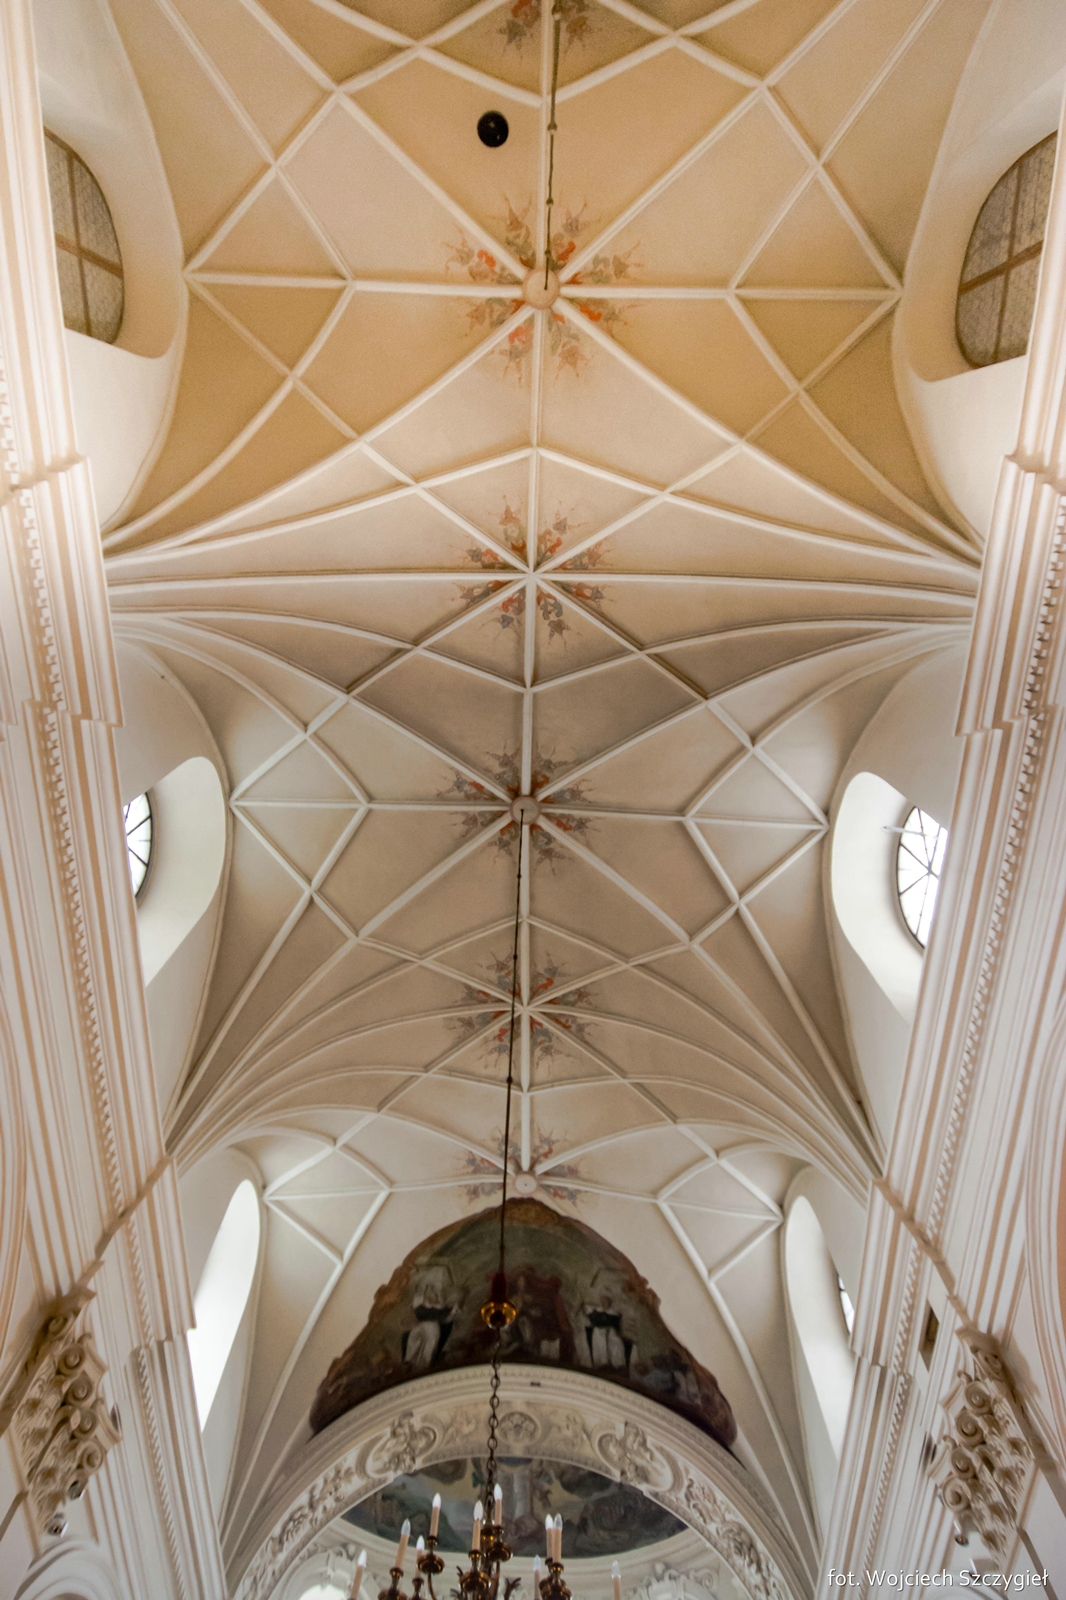 Groin Vault With Stuccos Over The Presbytery